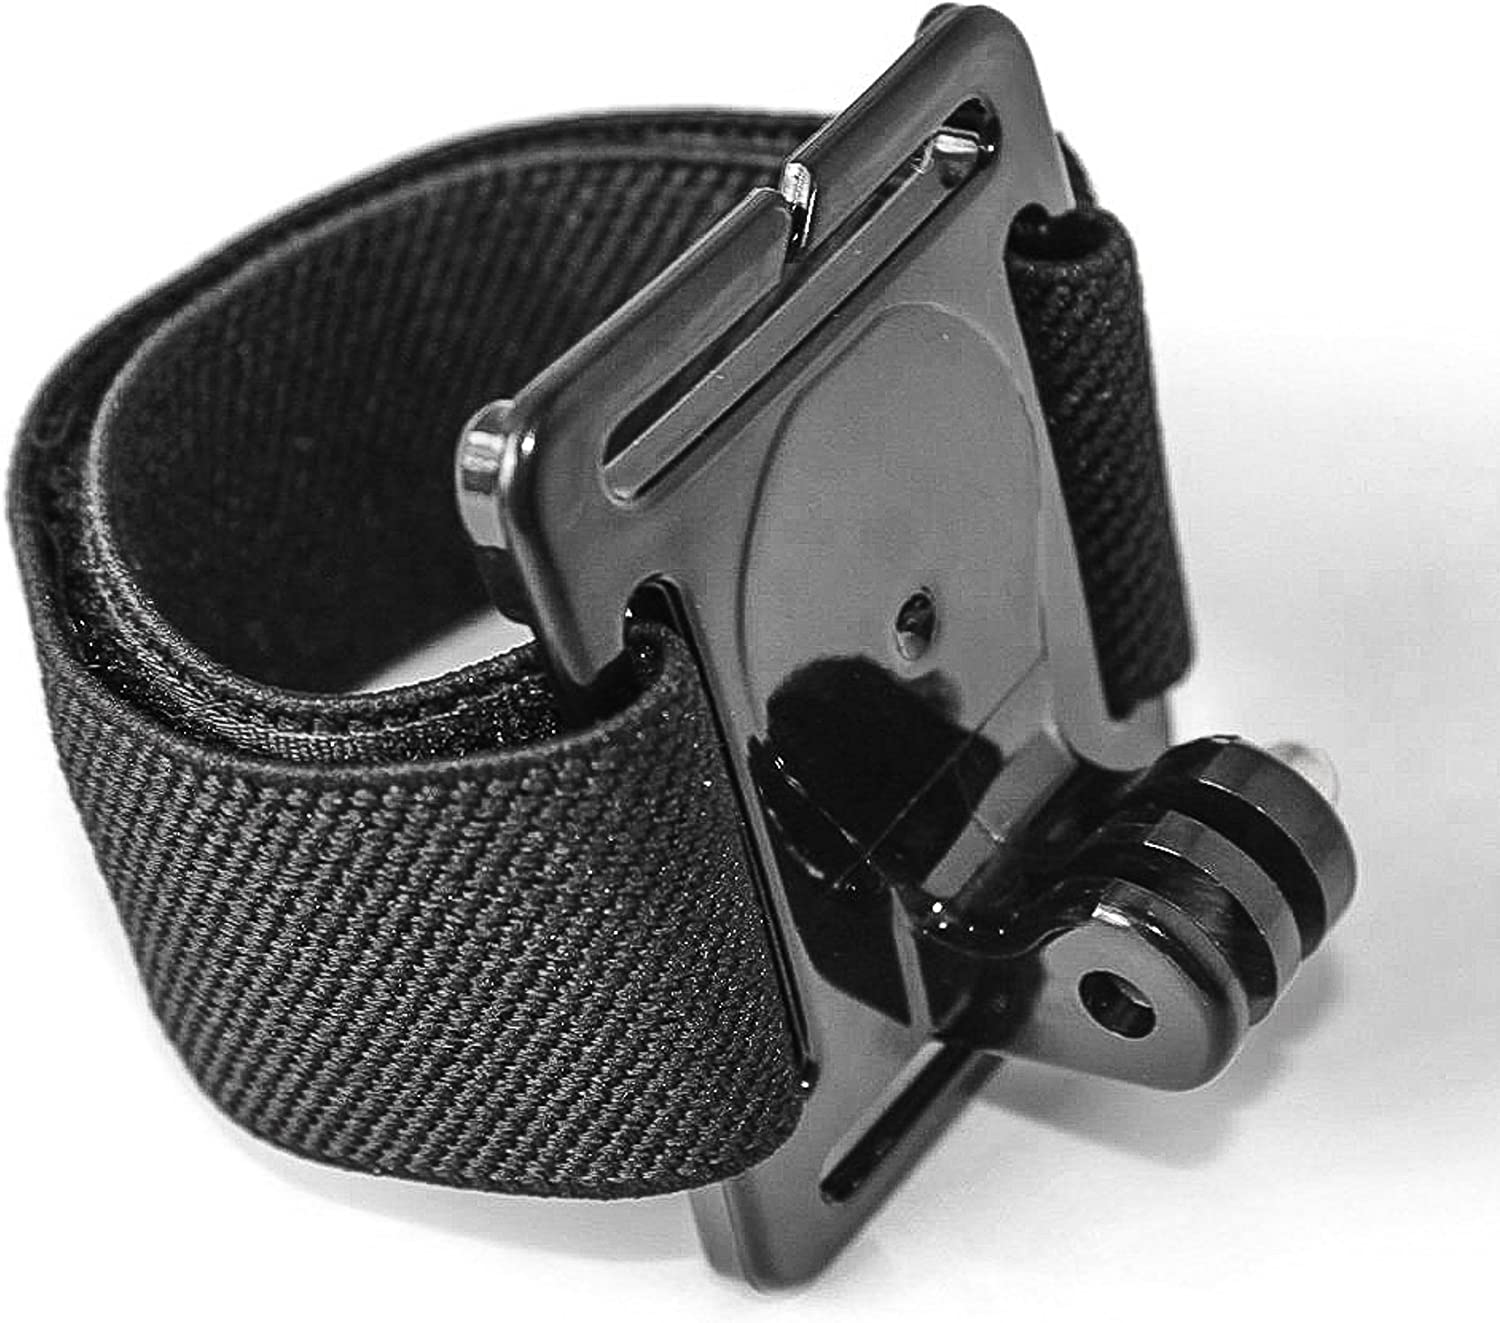 Ultimaxx Wrist Strap Mount Arm Wrist Strap for All GoPro